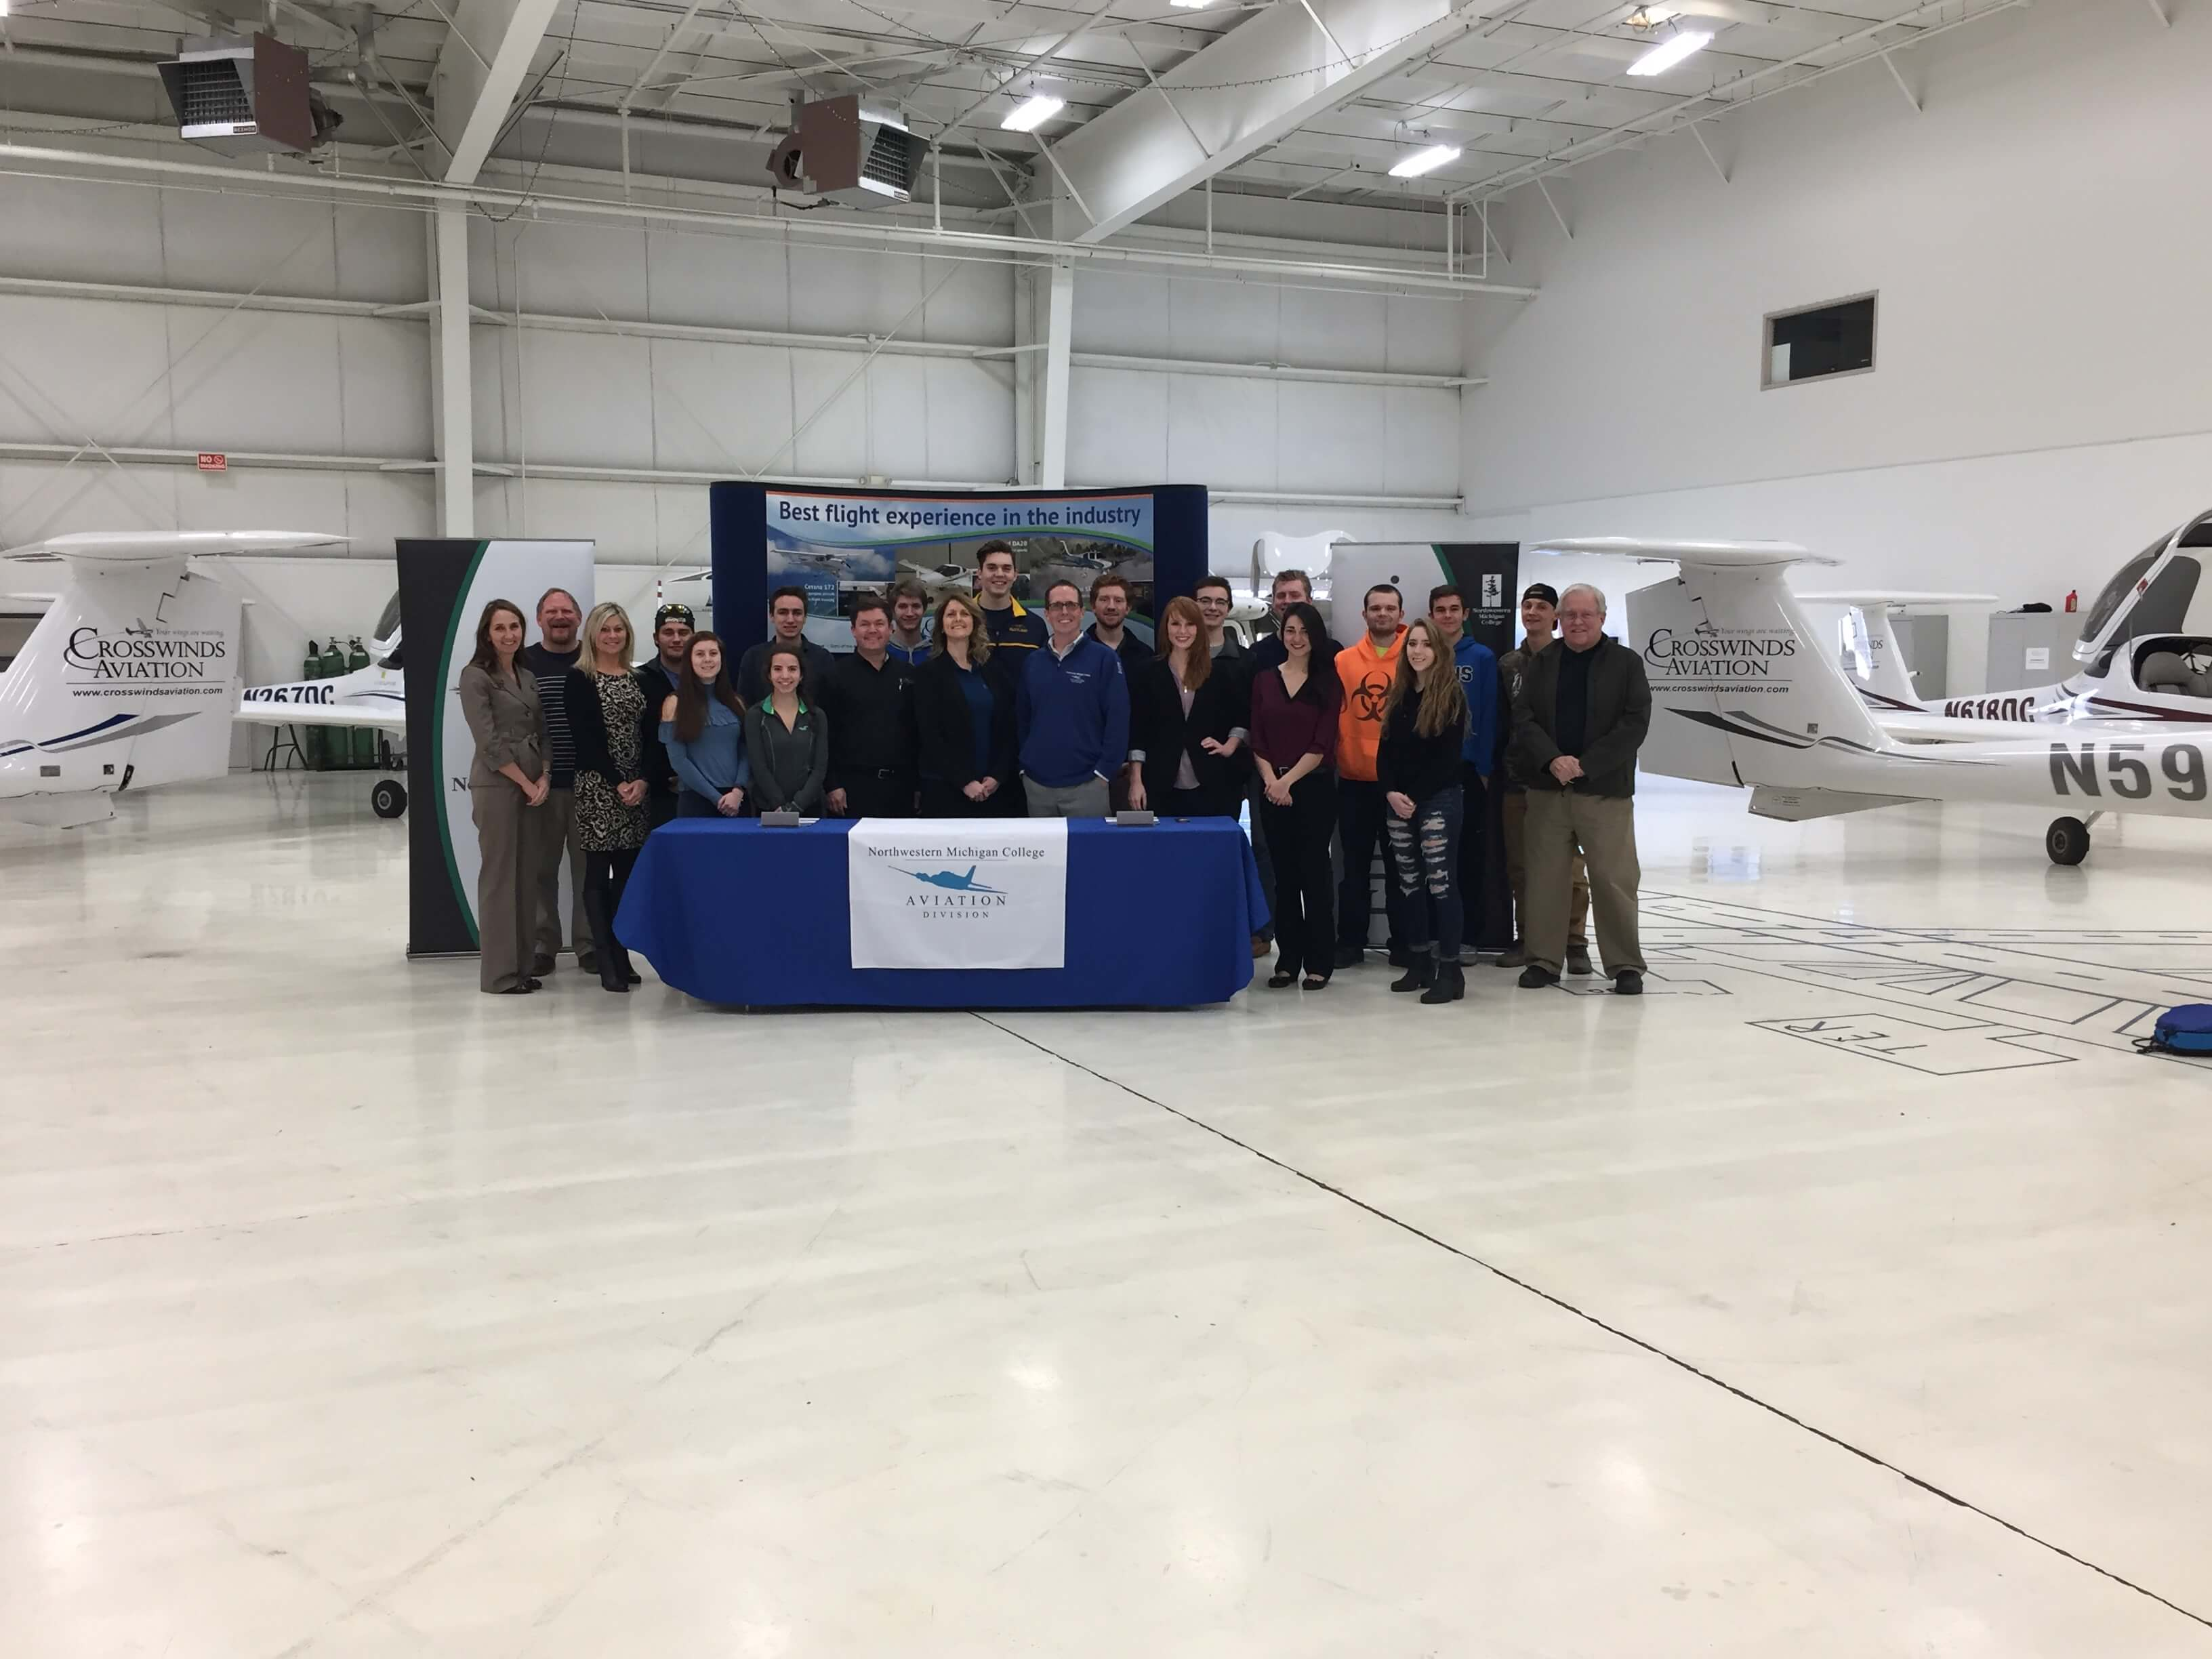 Taking Flight Initiative - Crosswinds Aviation